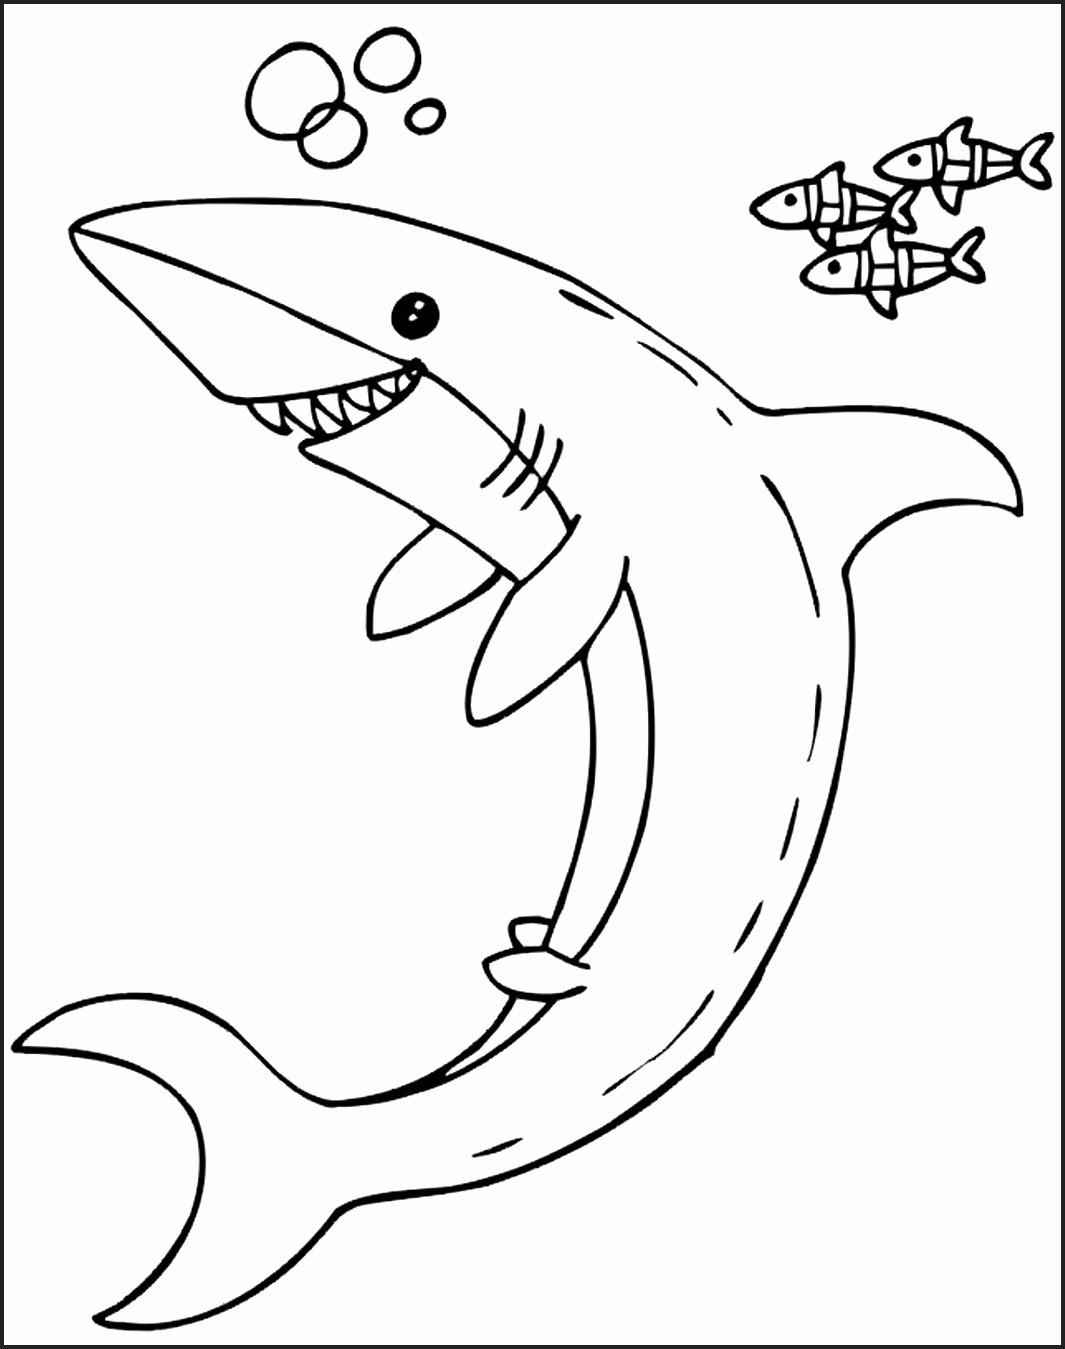 great white shark coloring page great white shark coloring pages to print free coloring page great shark white coloring